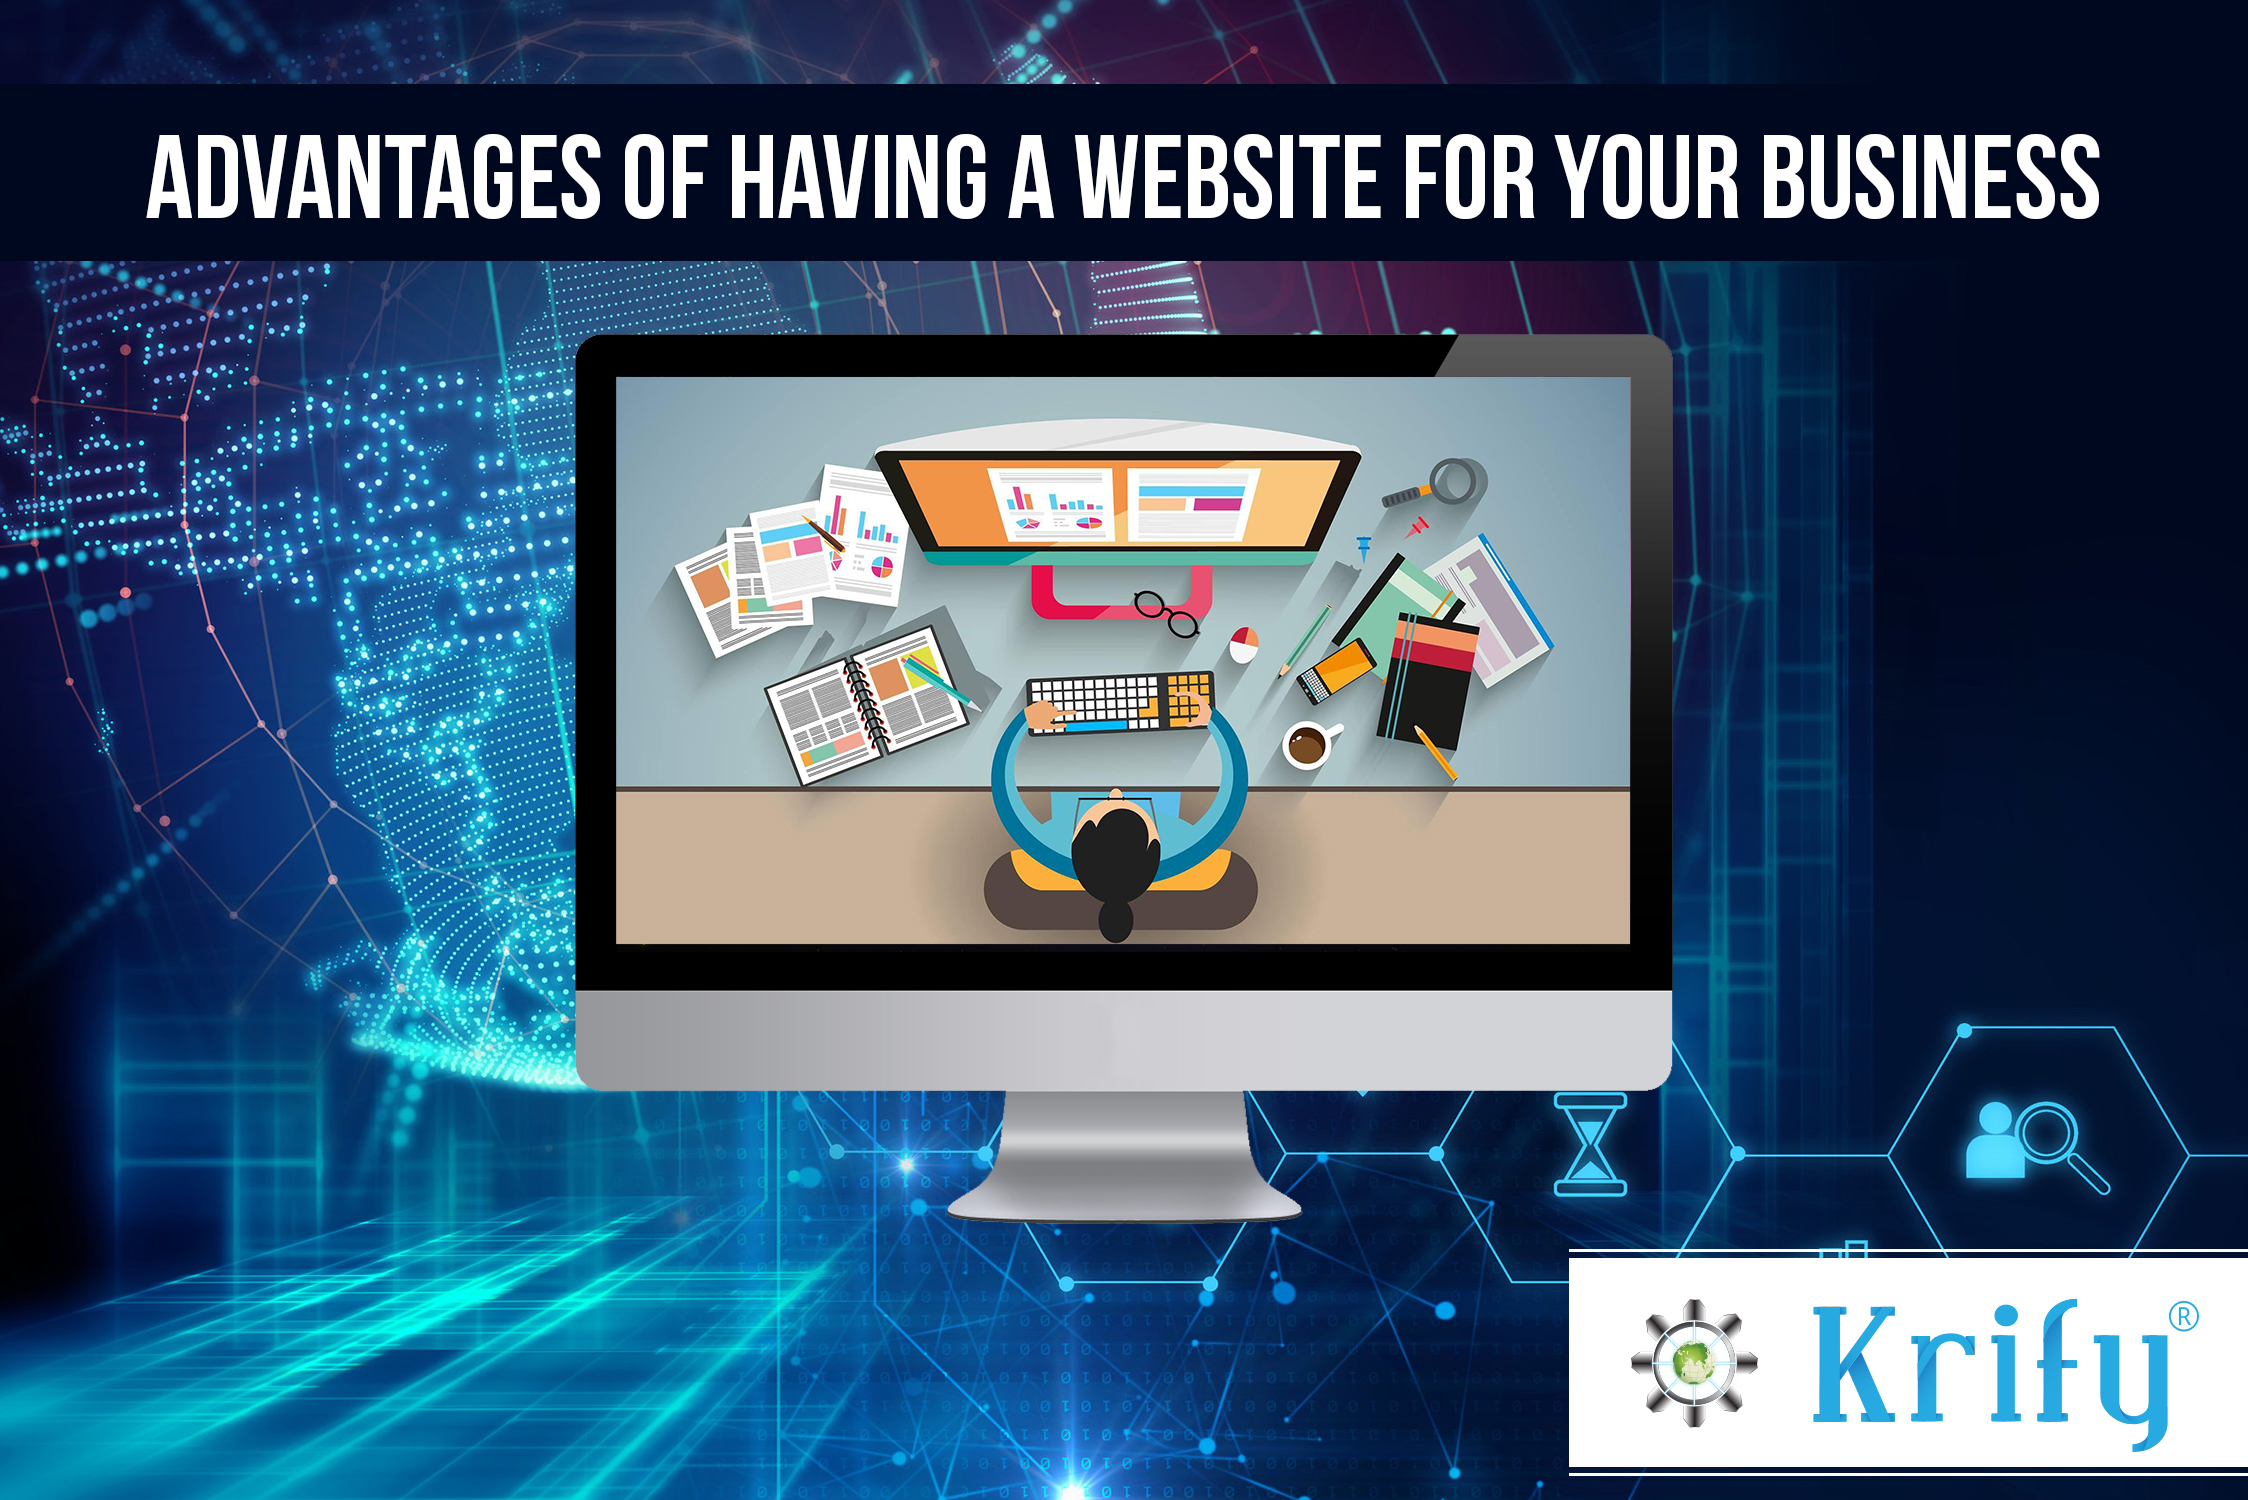 Advantages of having website for your business